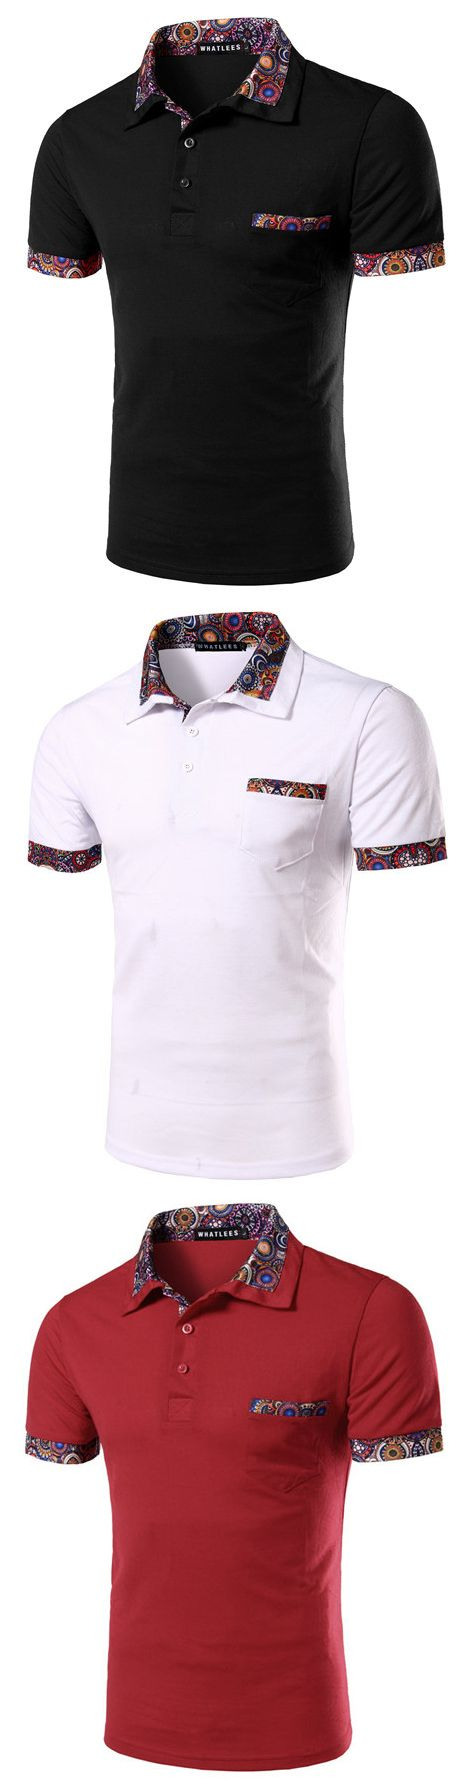 955f6c01e05d Mens Casual Polo Shirt Floral Printing Short Sleeve Slim Fit Spring Summer  Tops